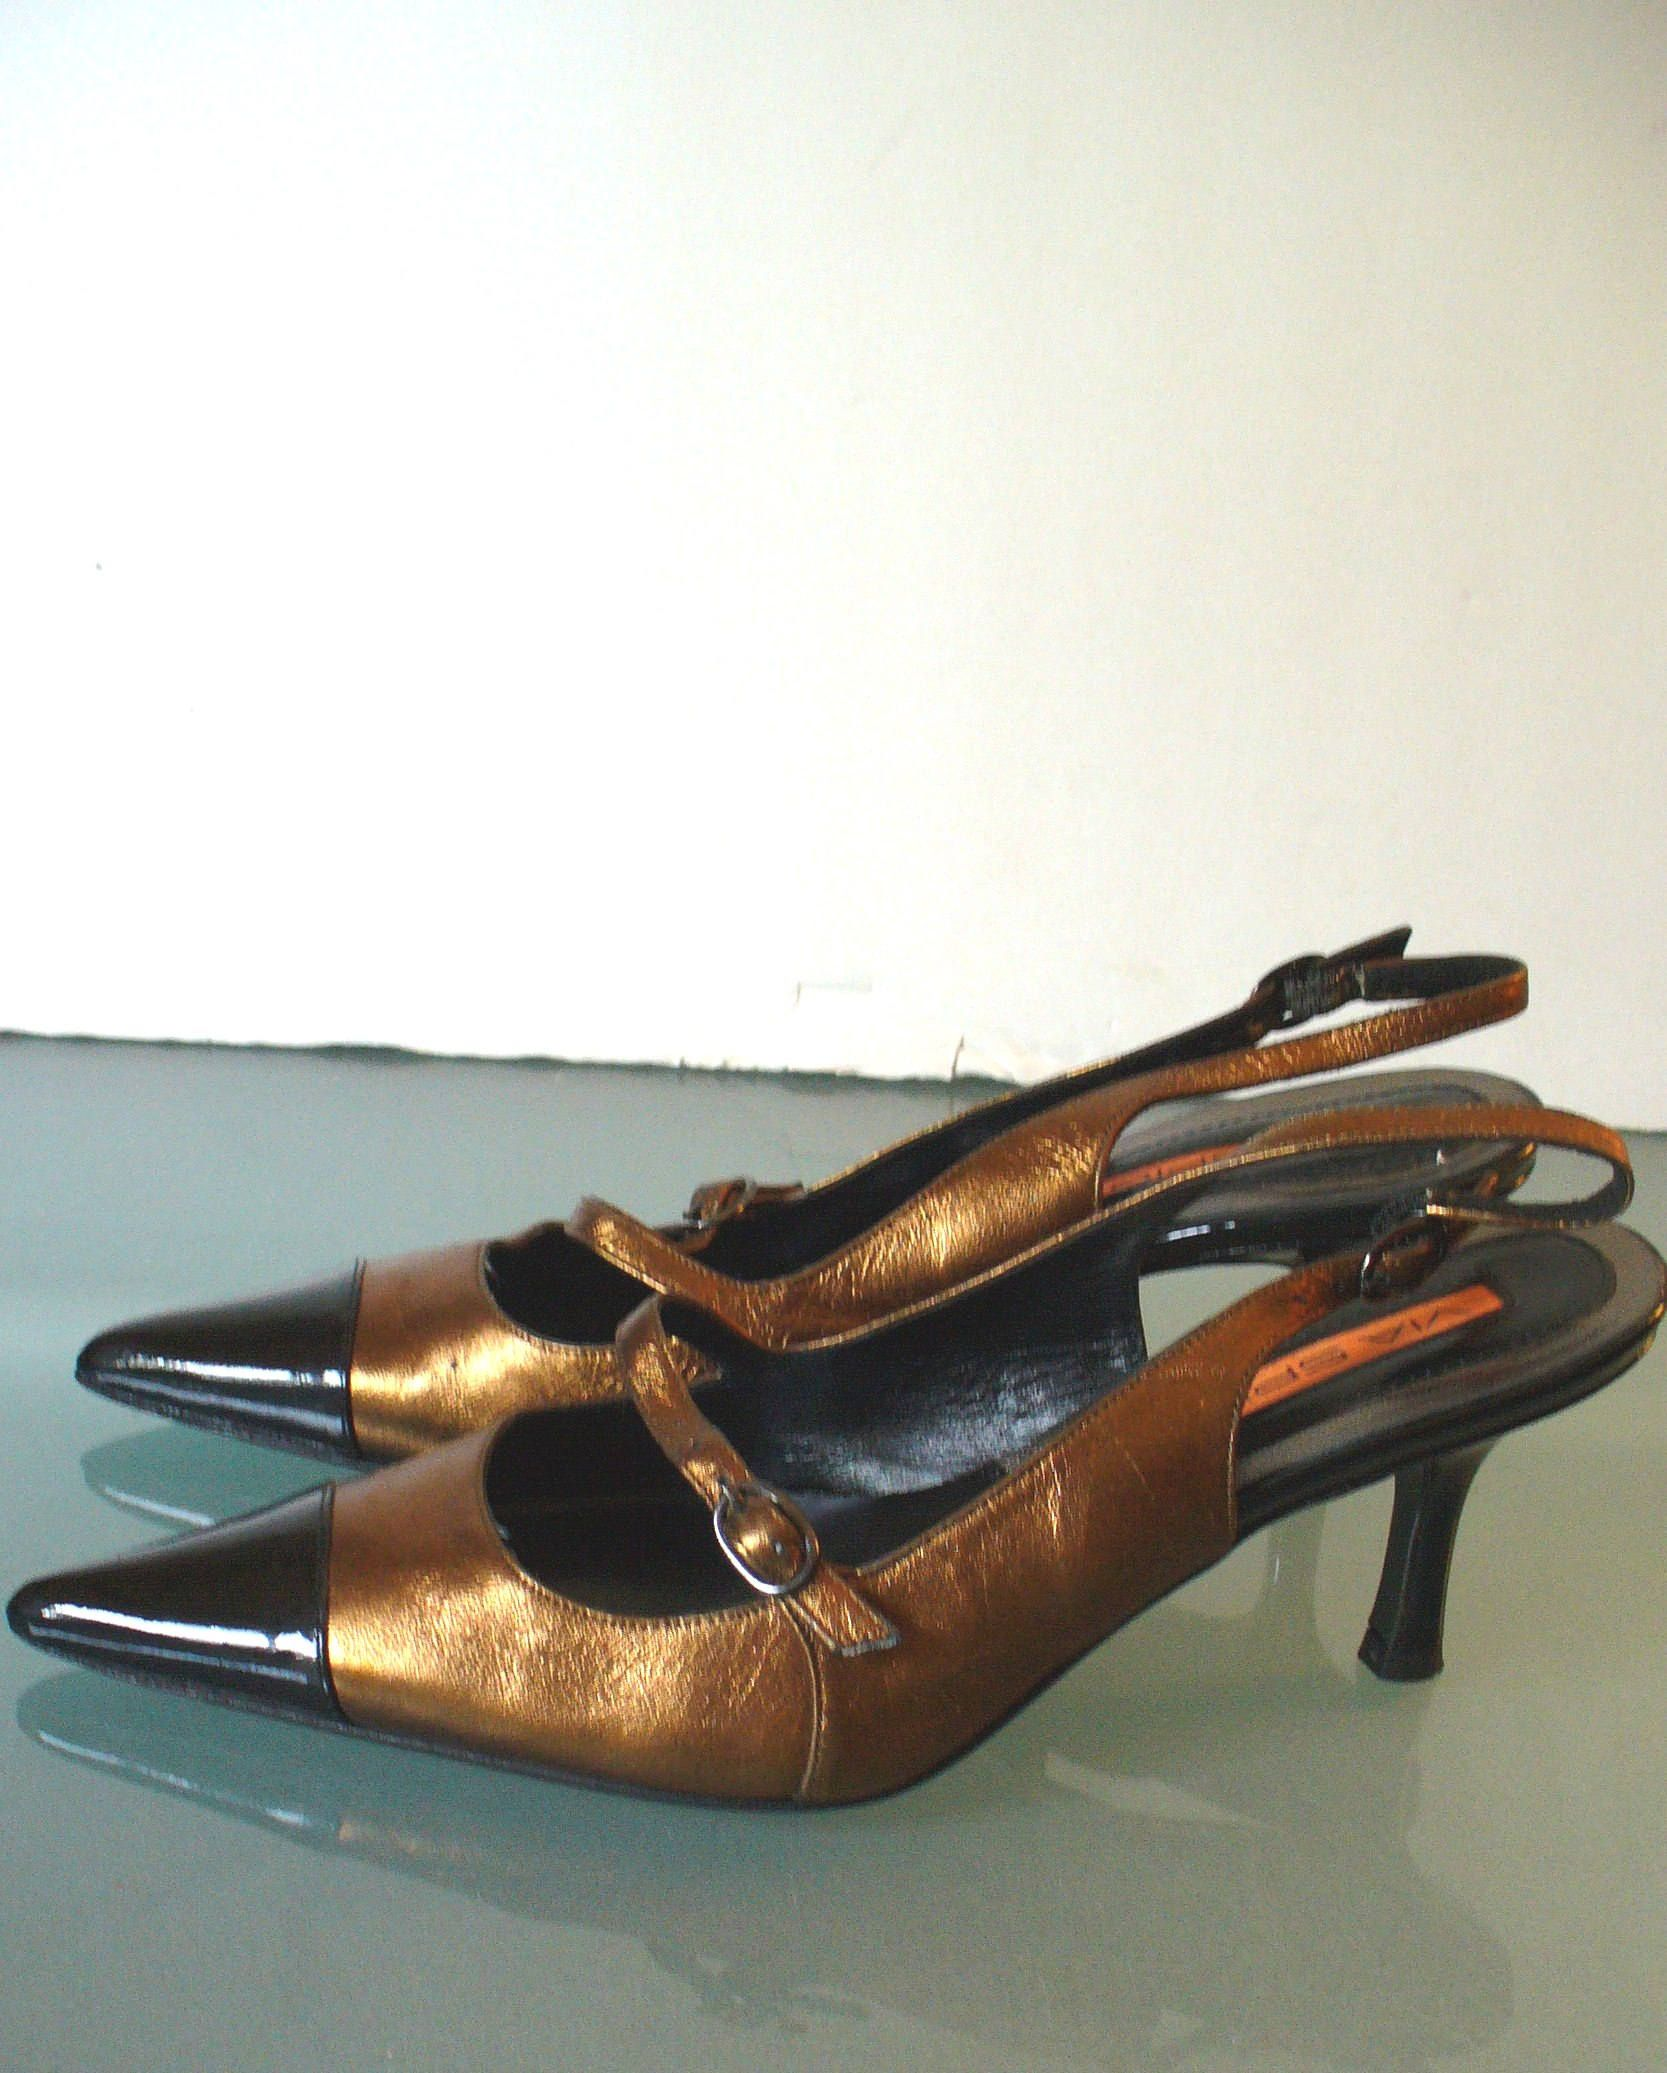 a90d052d24 Via Spiga Metallic   Patent Leather Sling Back Heels Made in Italy Size 5.5  US by EurotrashItaly on Etsy